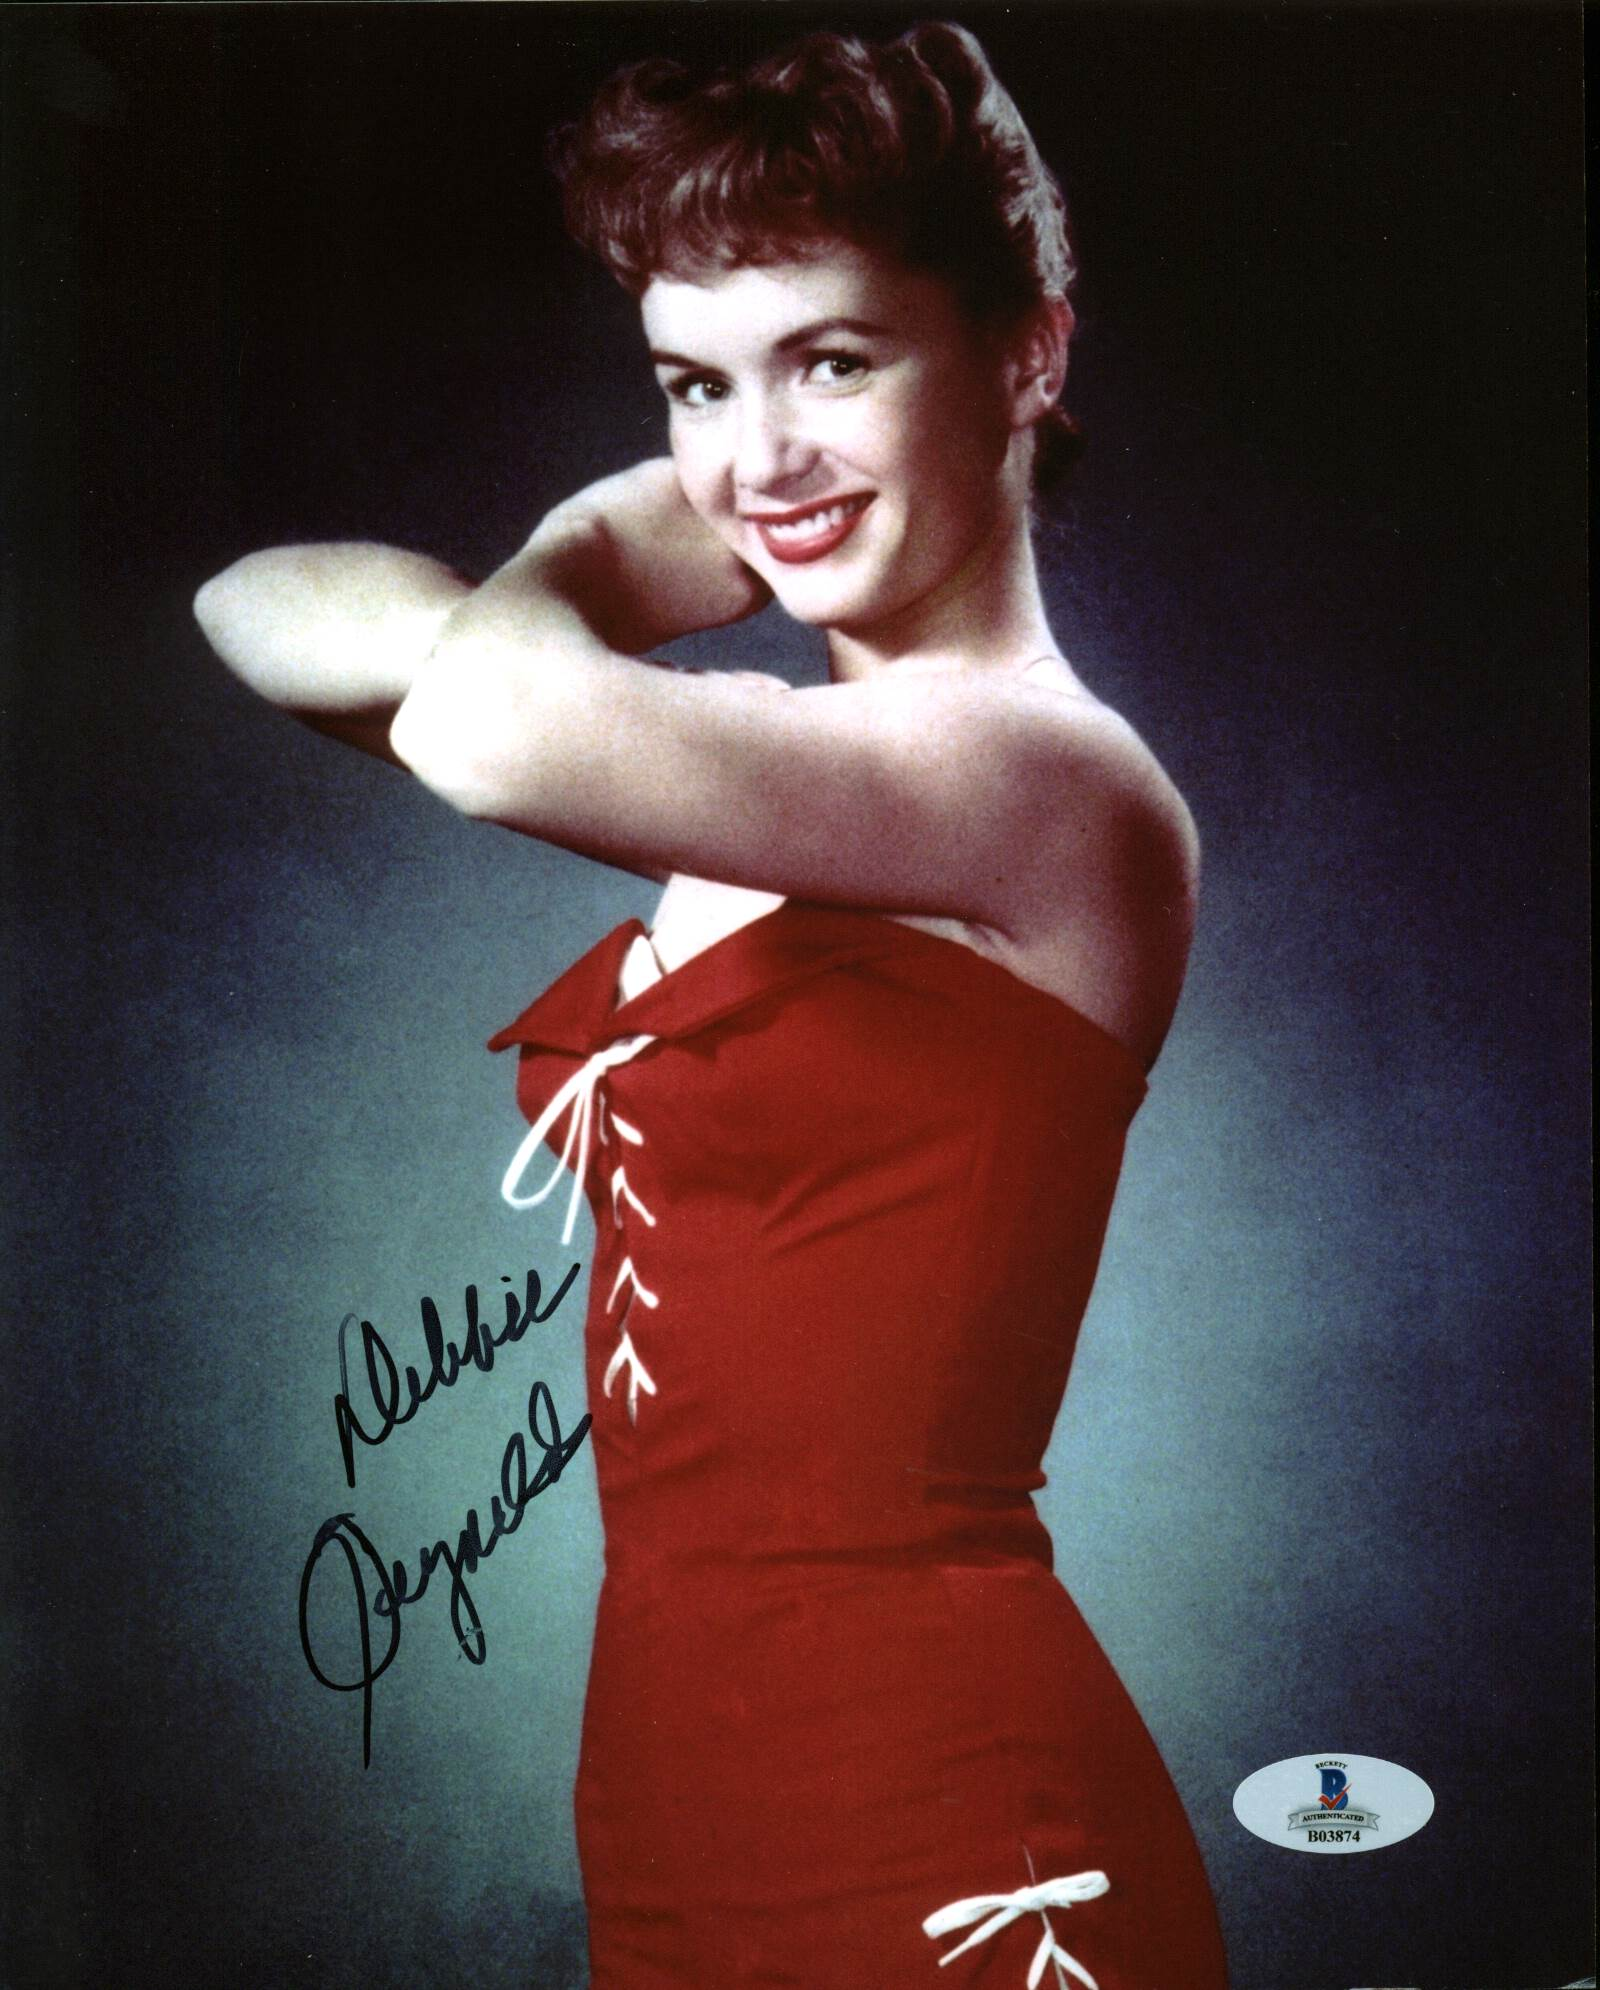 Debbie Reynolds Singin' in the Rain Authentic Signed 8X10 Photo BAS #B03874